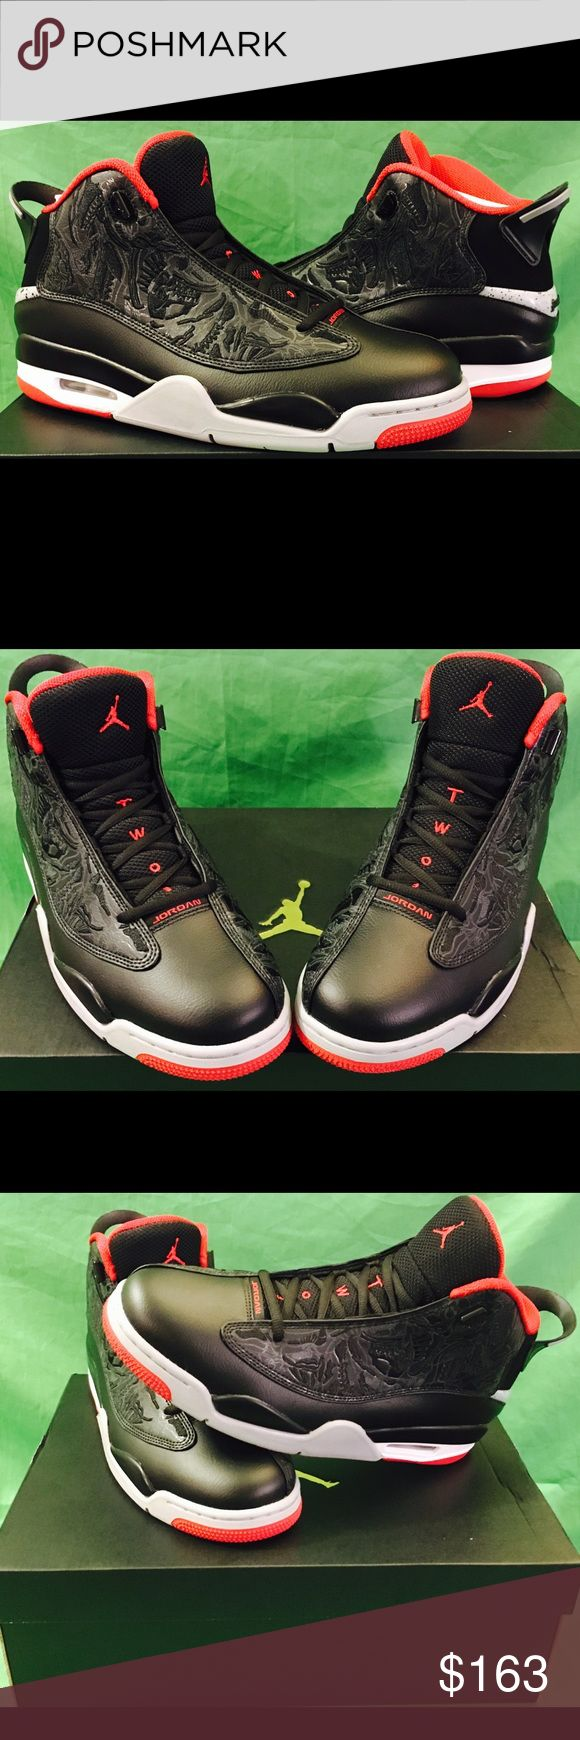 Air Jordan Dub Zero's. OG Box ! Brand New! Air Jordan Dub Zero's. OG Box ! Brand New! Get them now, because the won't last long! Sizes 11, 10.5, & 9.5. Black-Gym Red-Wolf Gray-White. All reasonable offers will be considered! Key  Words (Reasonable Offers Considered)! Air Jordan Shoes Athletic Shoes